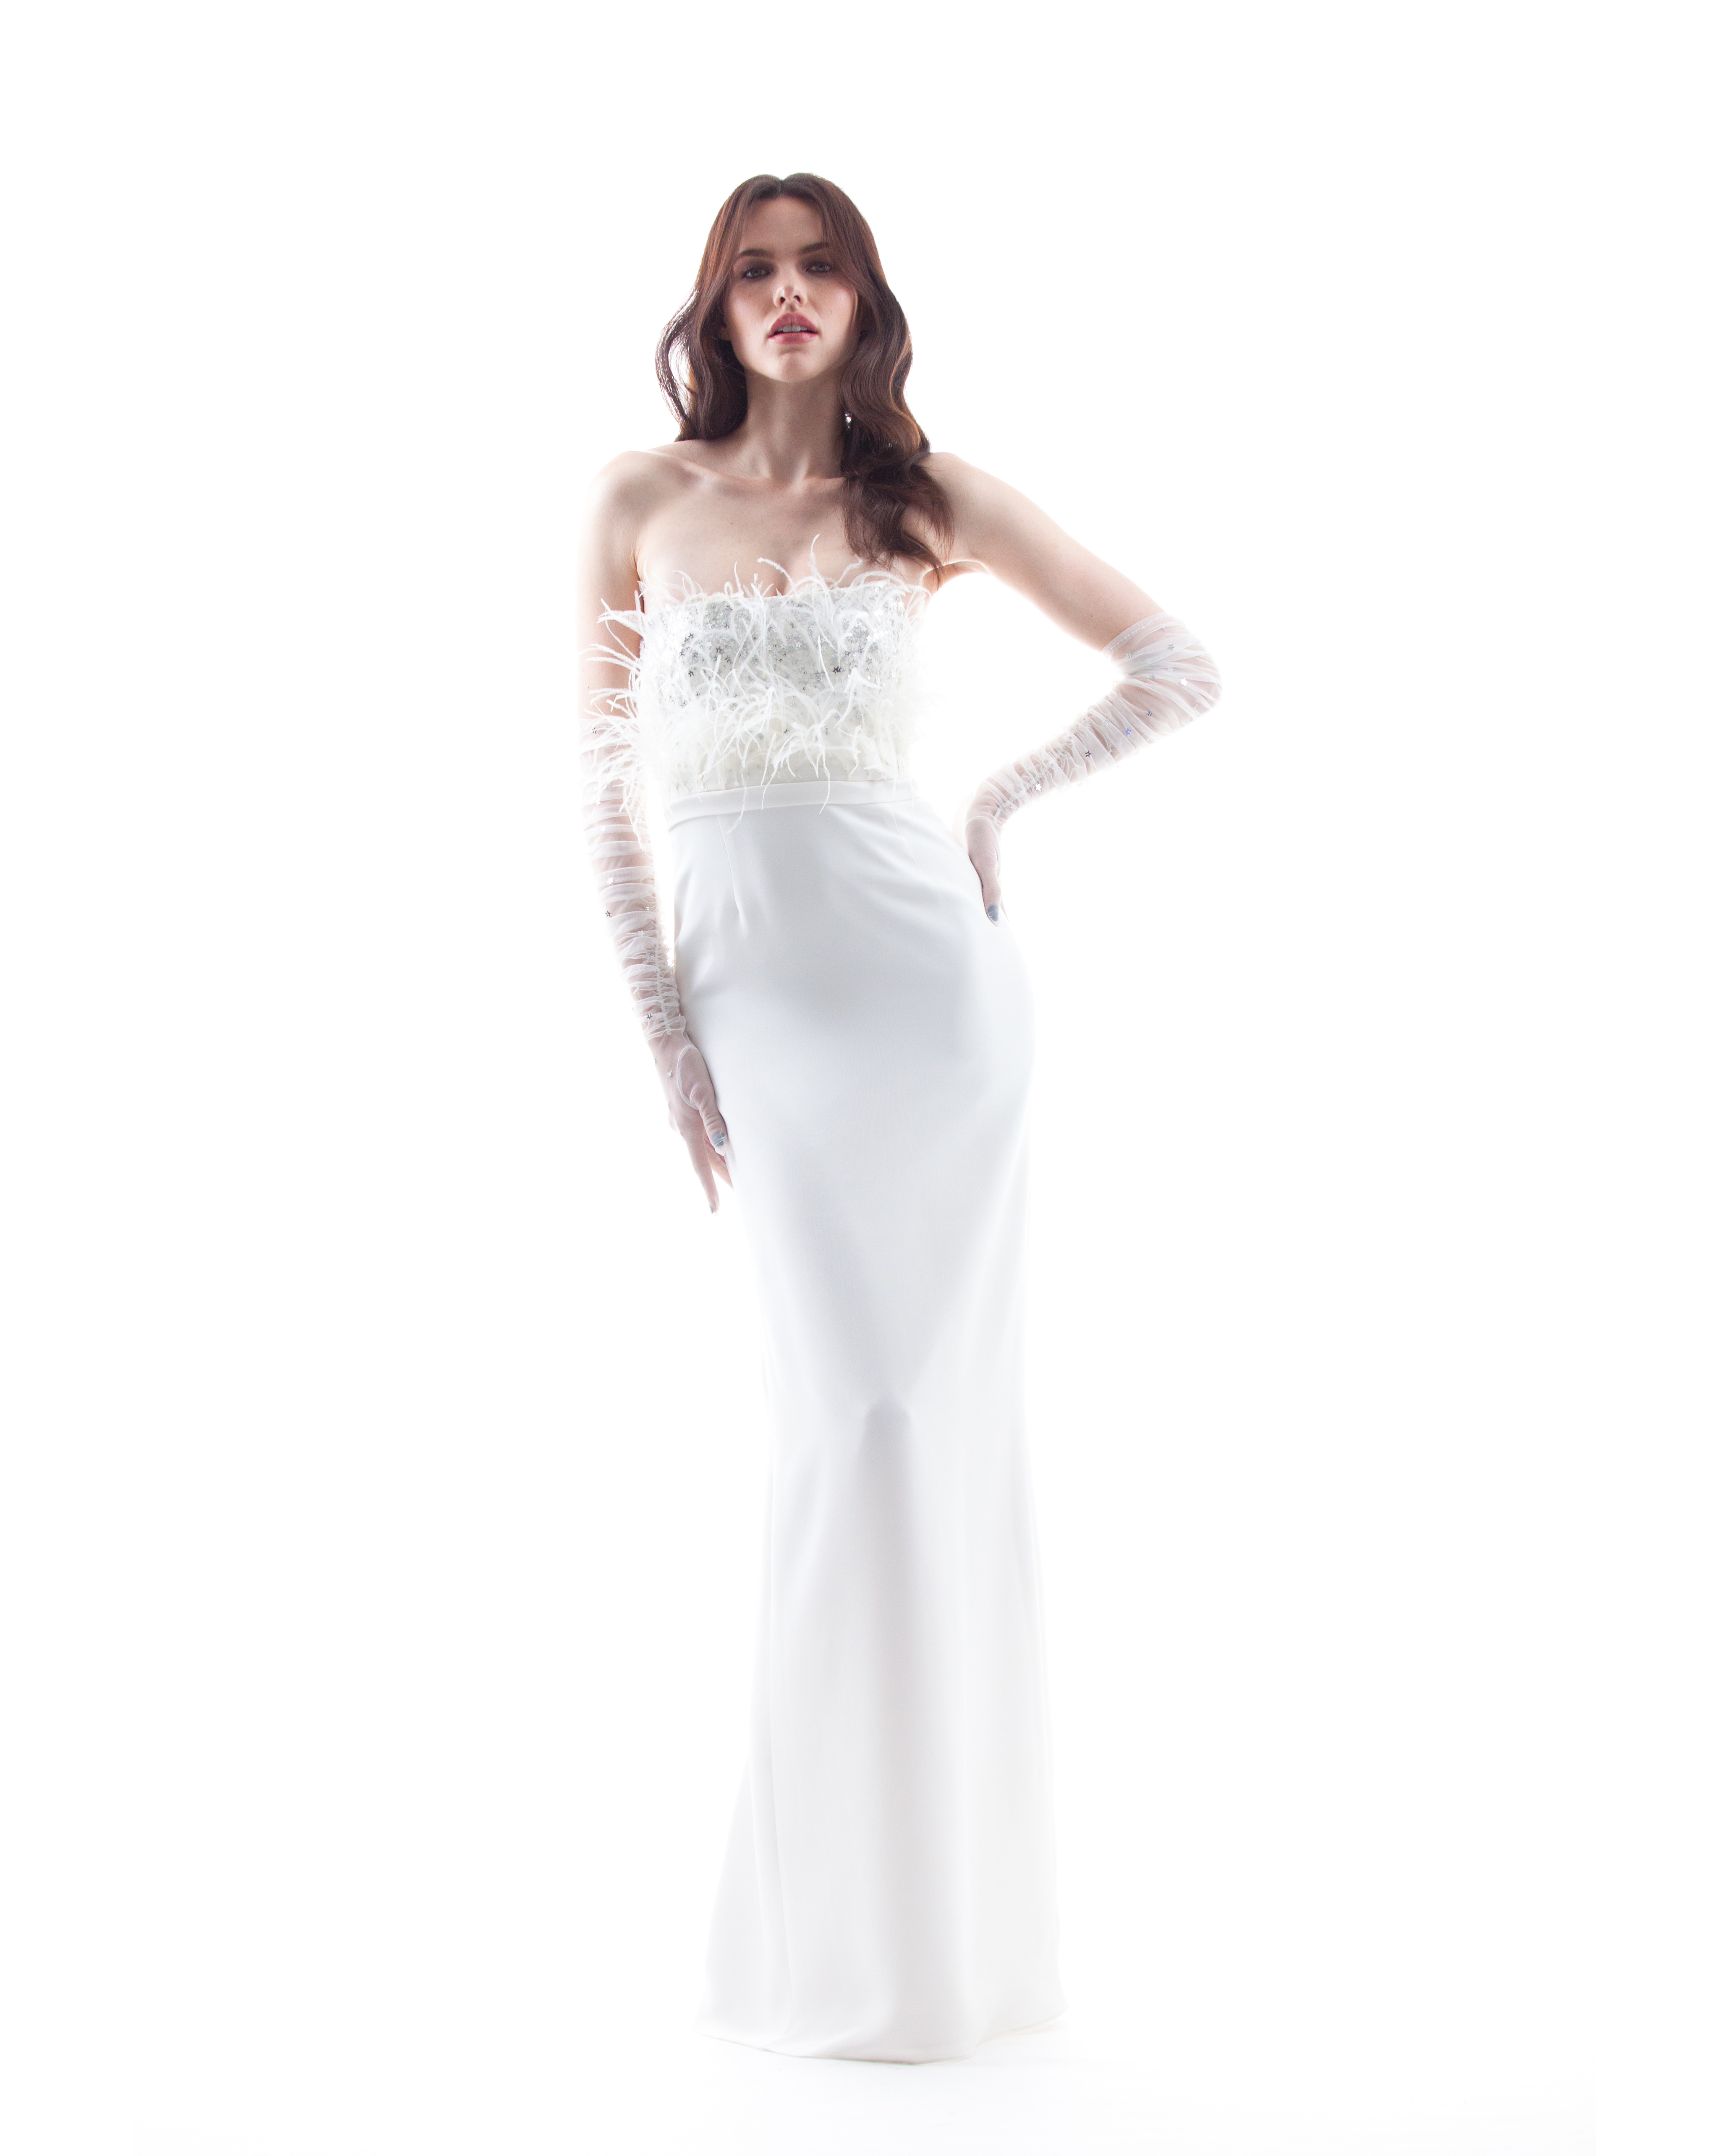 strapless houghton wedding dress spring 2018 with feathered bodice